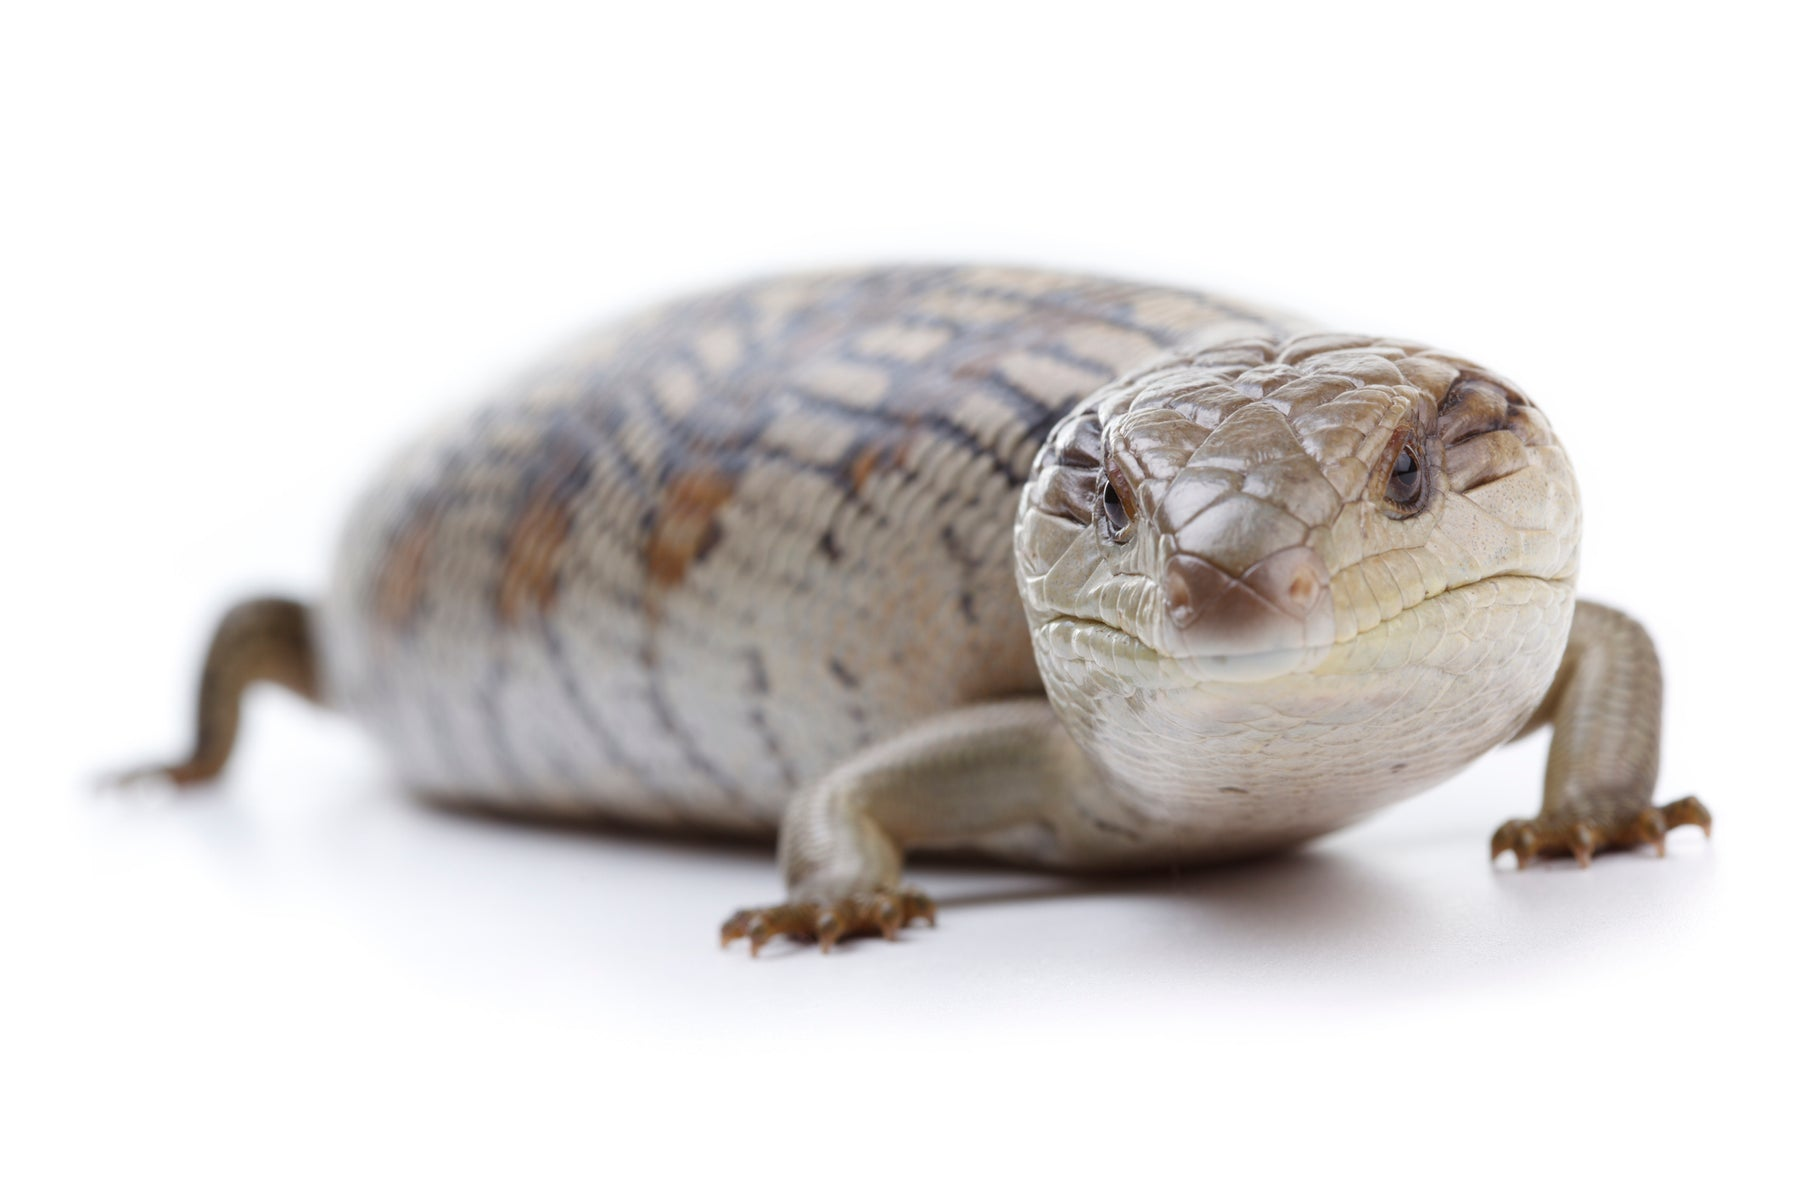 How to Care for Your Blue Tongue Skink